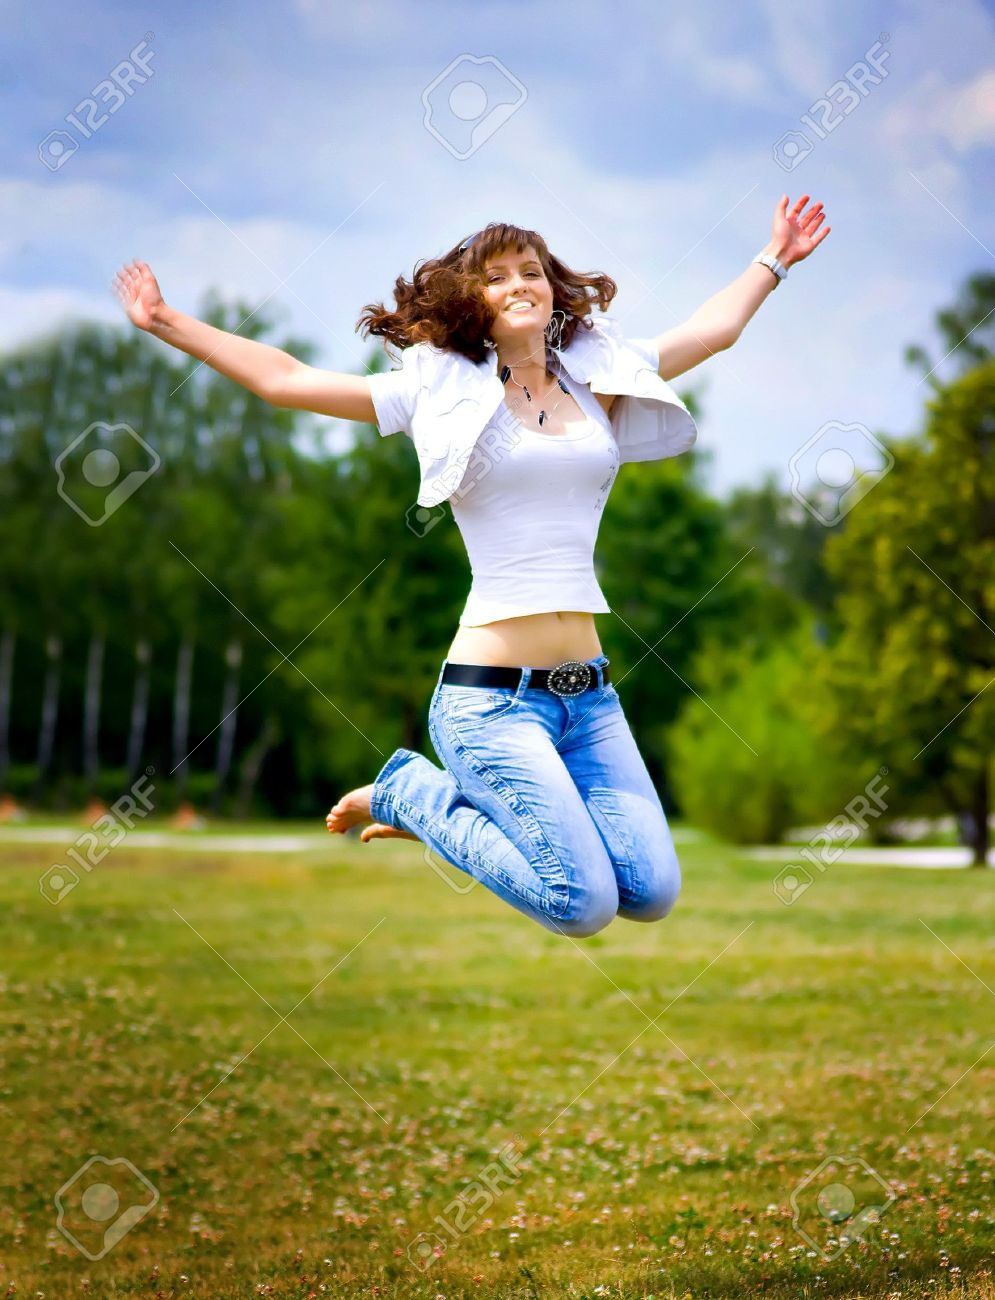 Happy Jumping Girl Stock Photo, Picture And Royalty Free Image. Image  6959421.